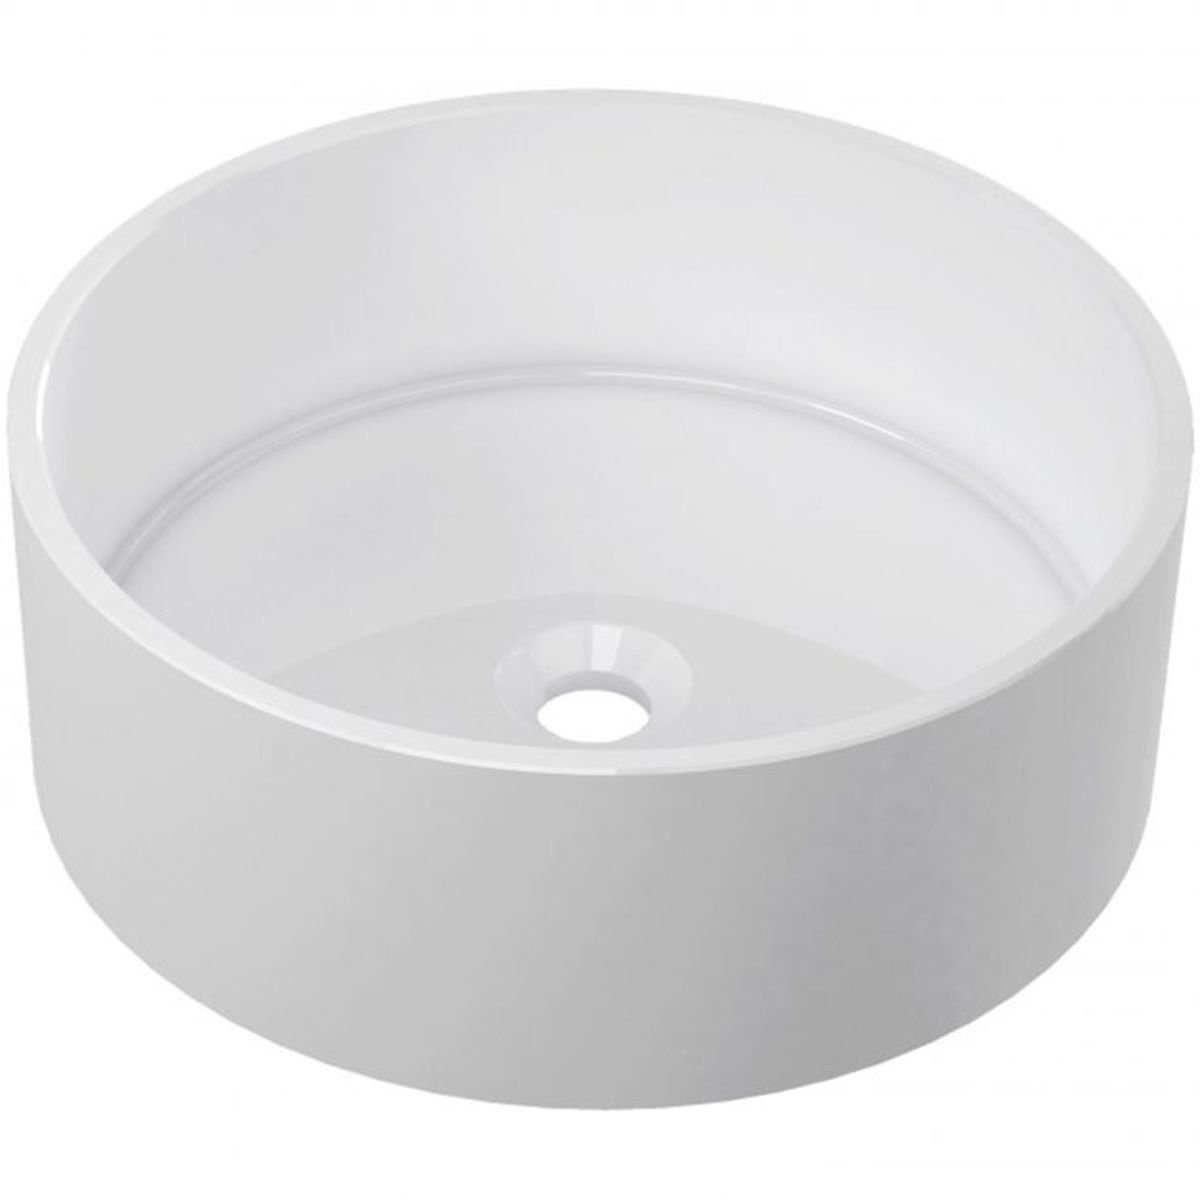 Bathrooms To Love Hana White Round Polymarble Washbowl